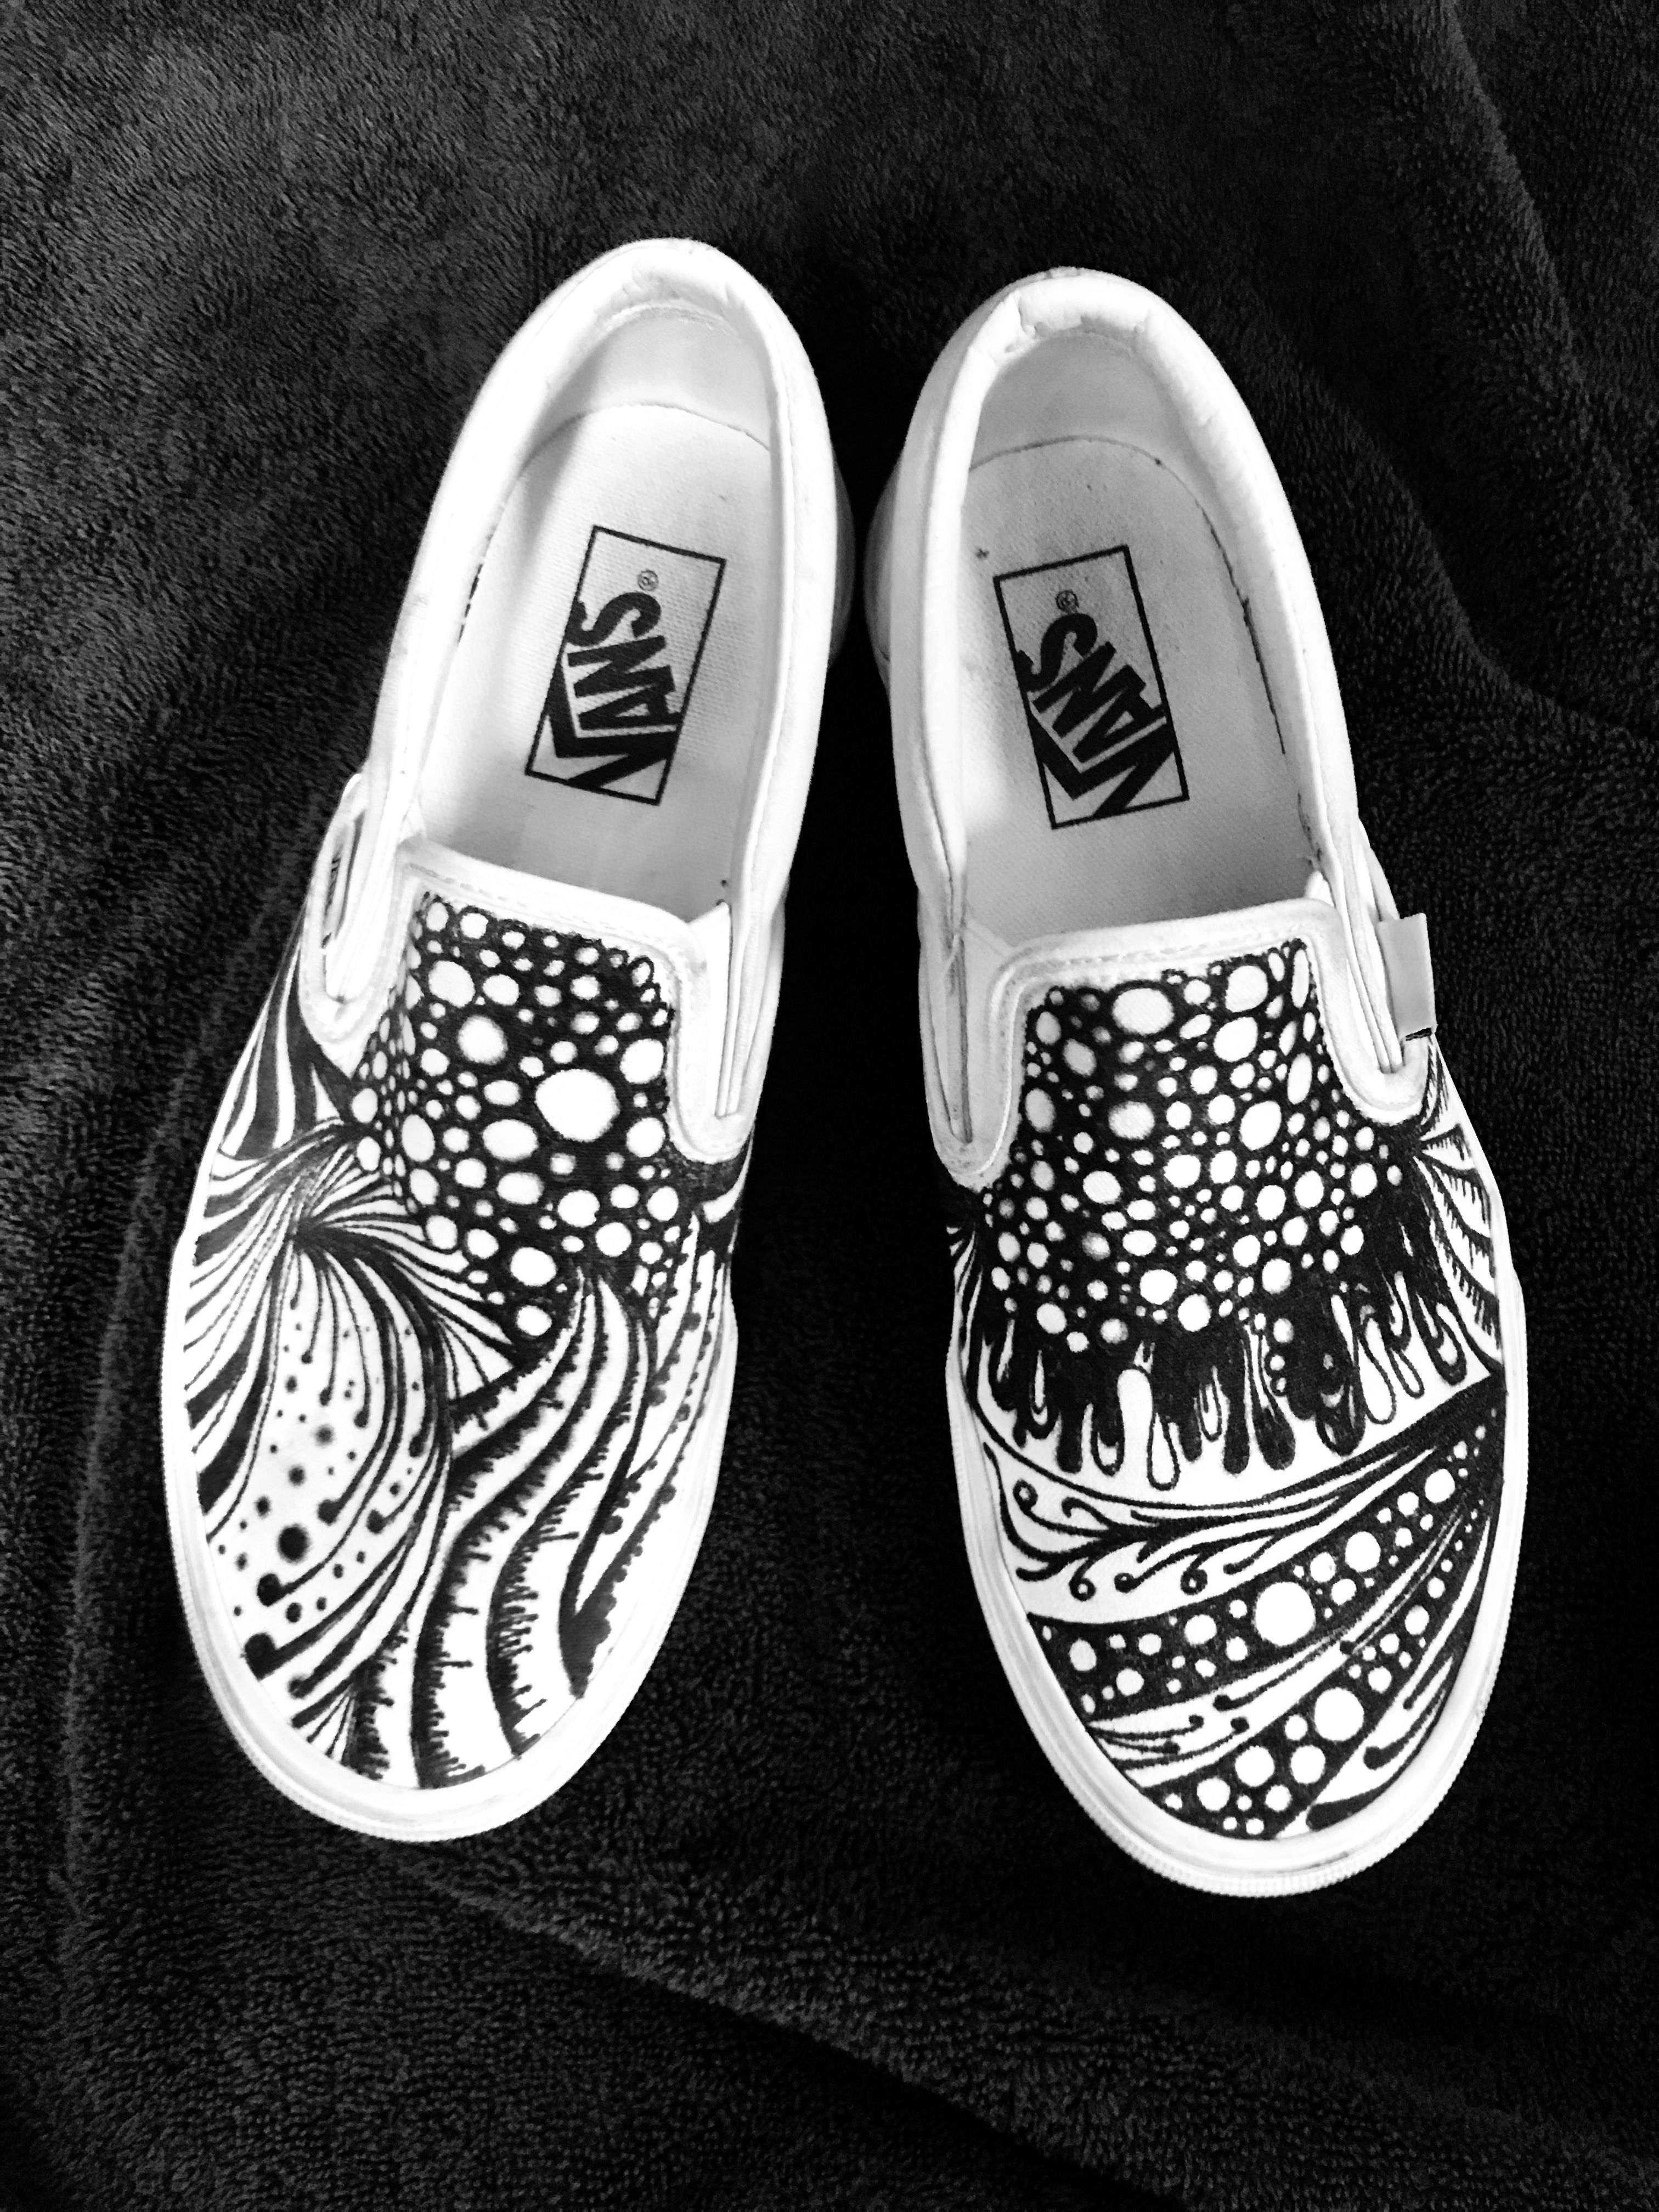 White Vans Customized With Oil Sharpie Pens With Images